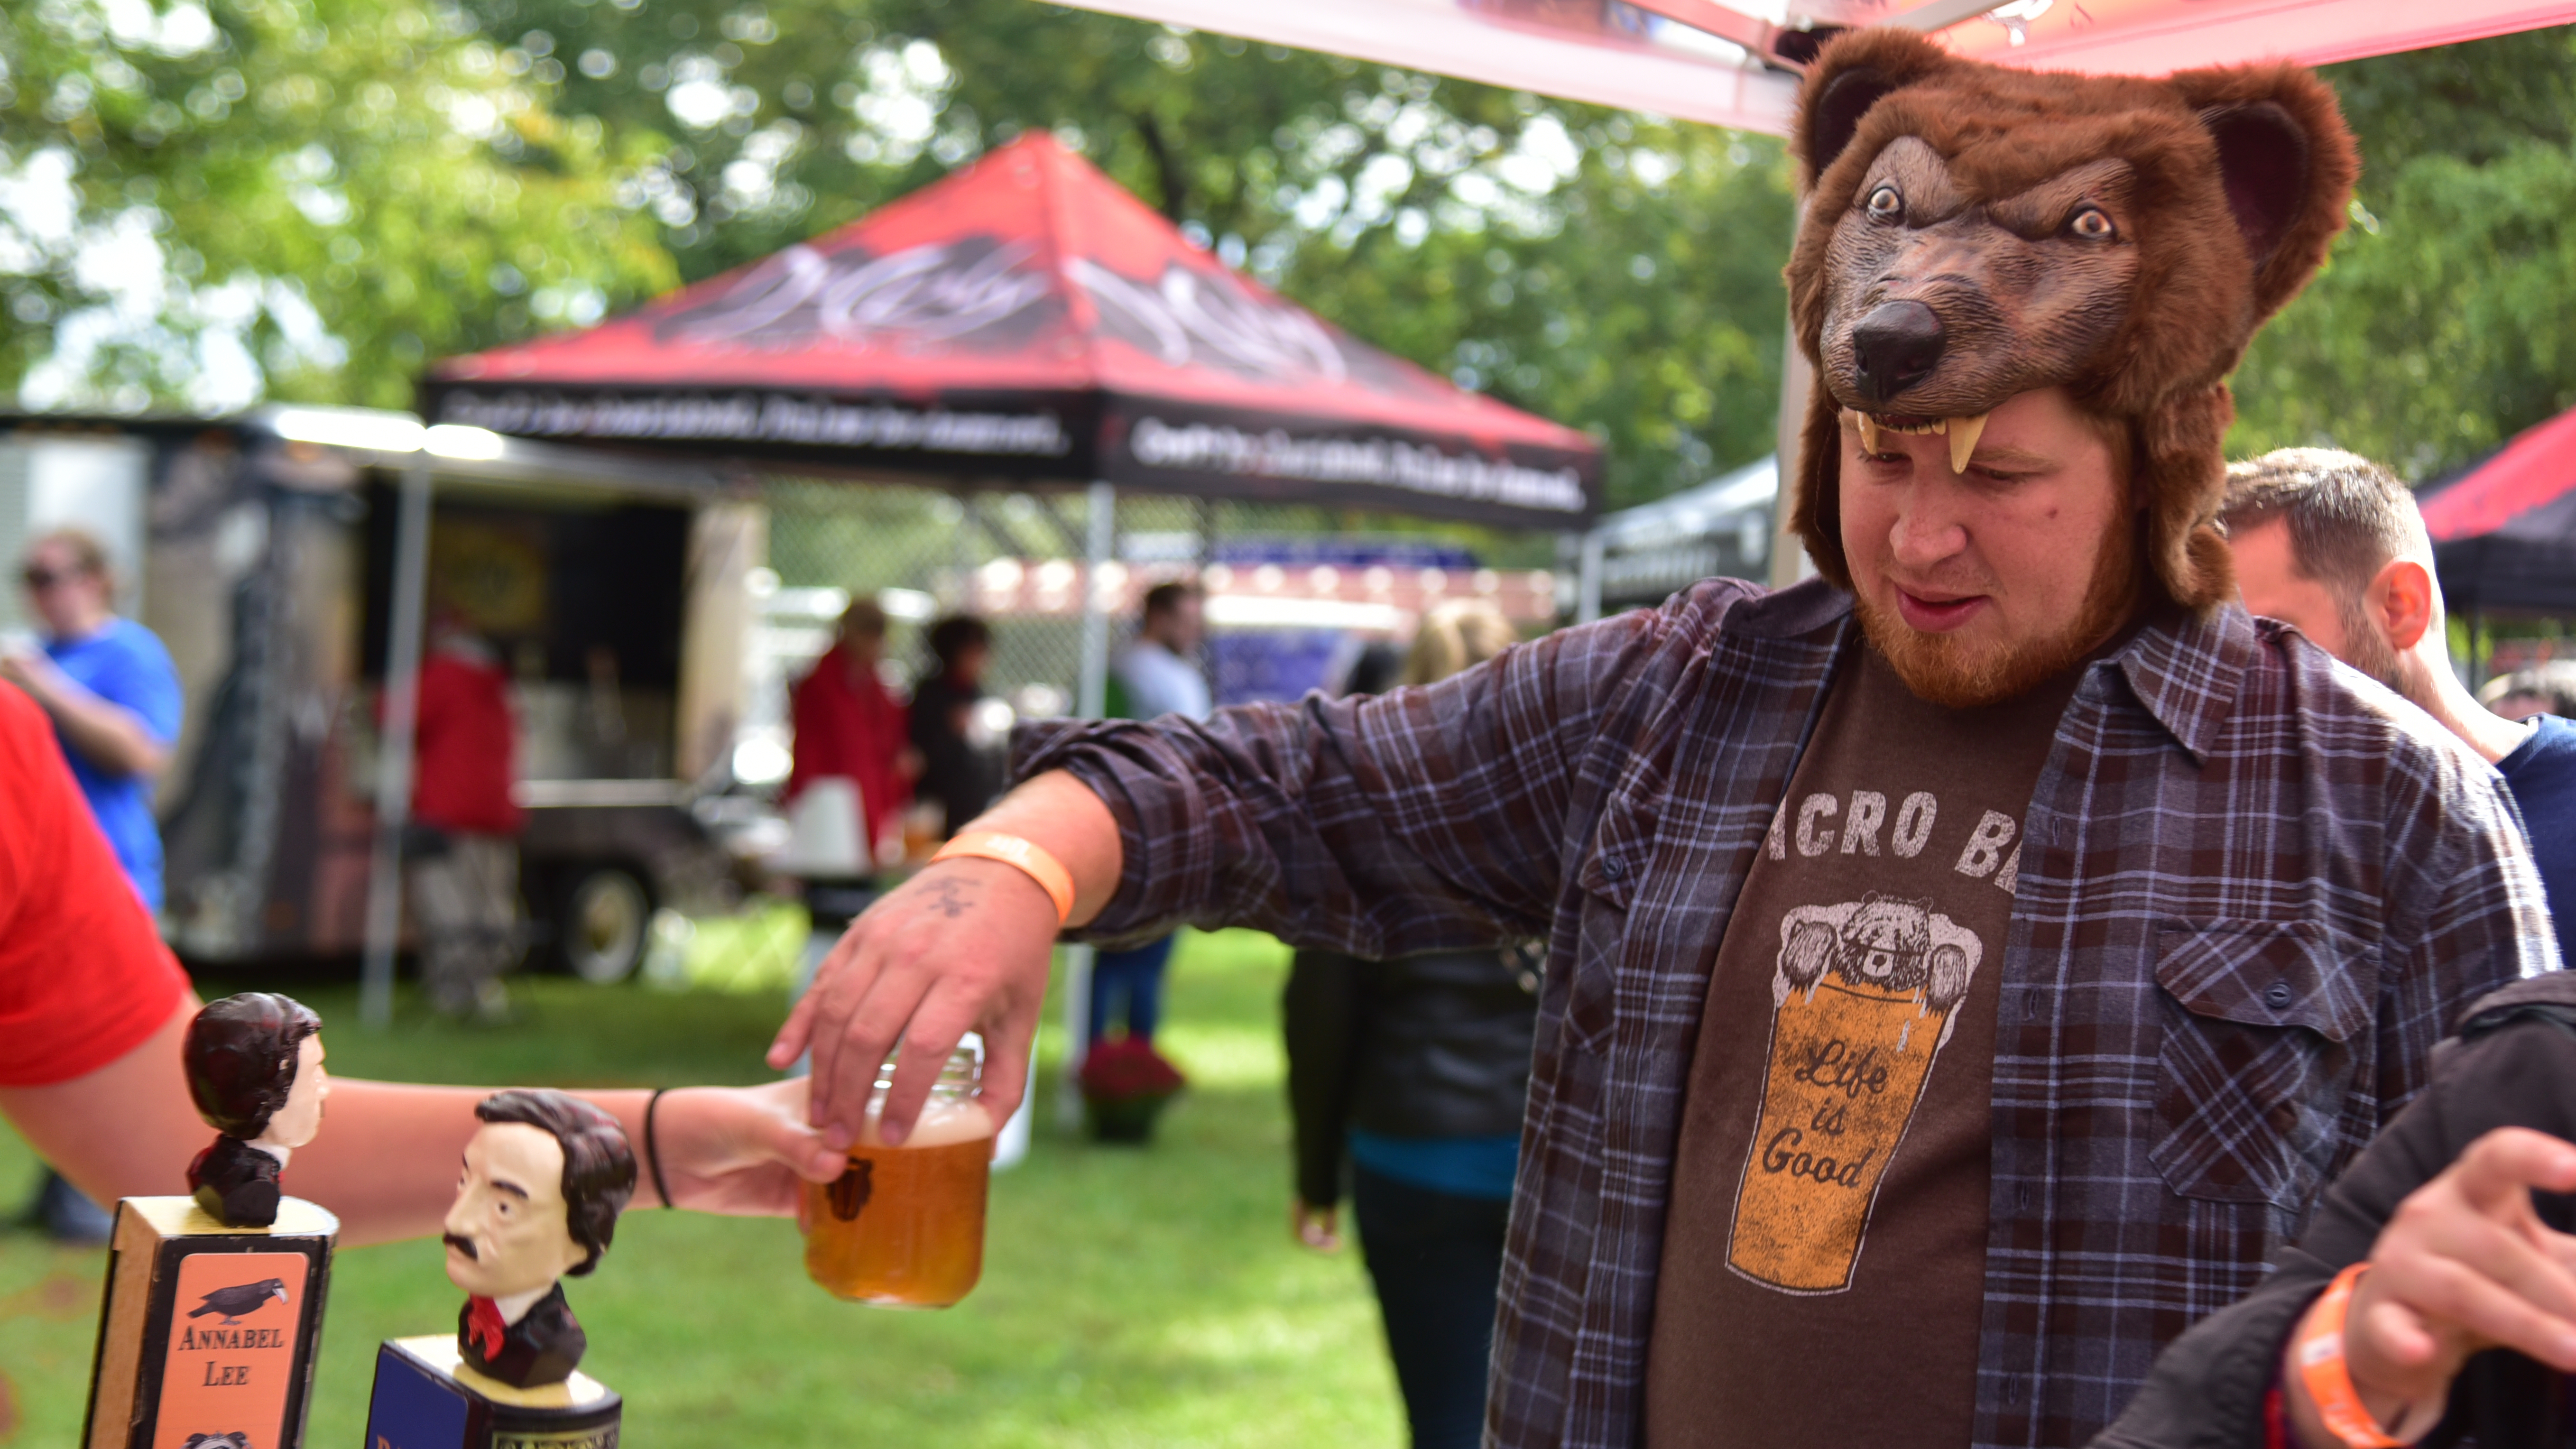 Man in bear hat being handed a beer